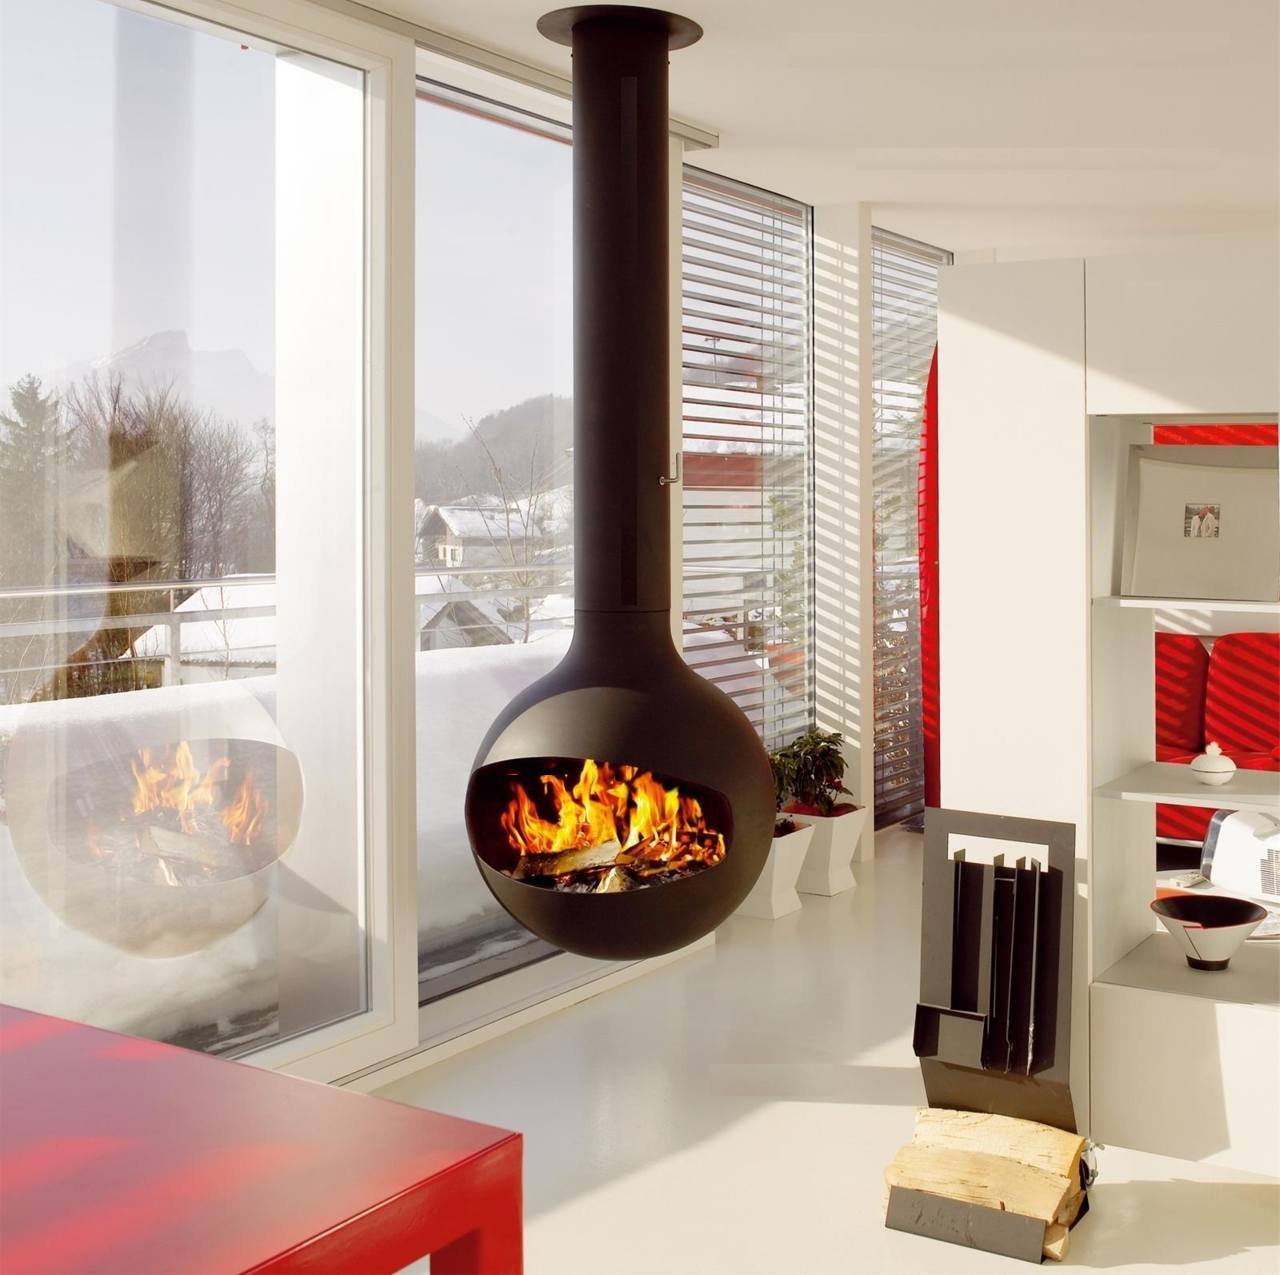 10 Inspiring Examples Of Fireplace Decoration